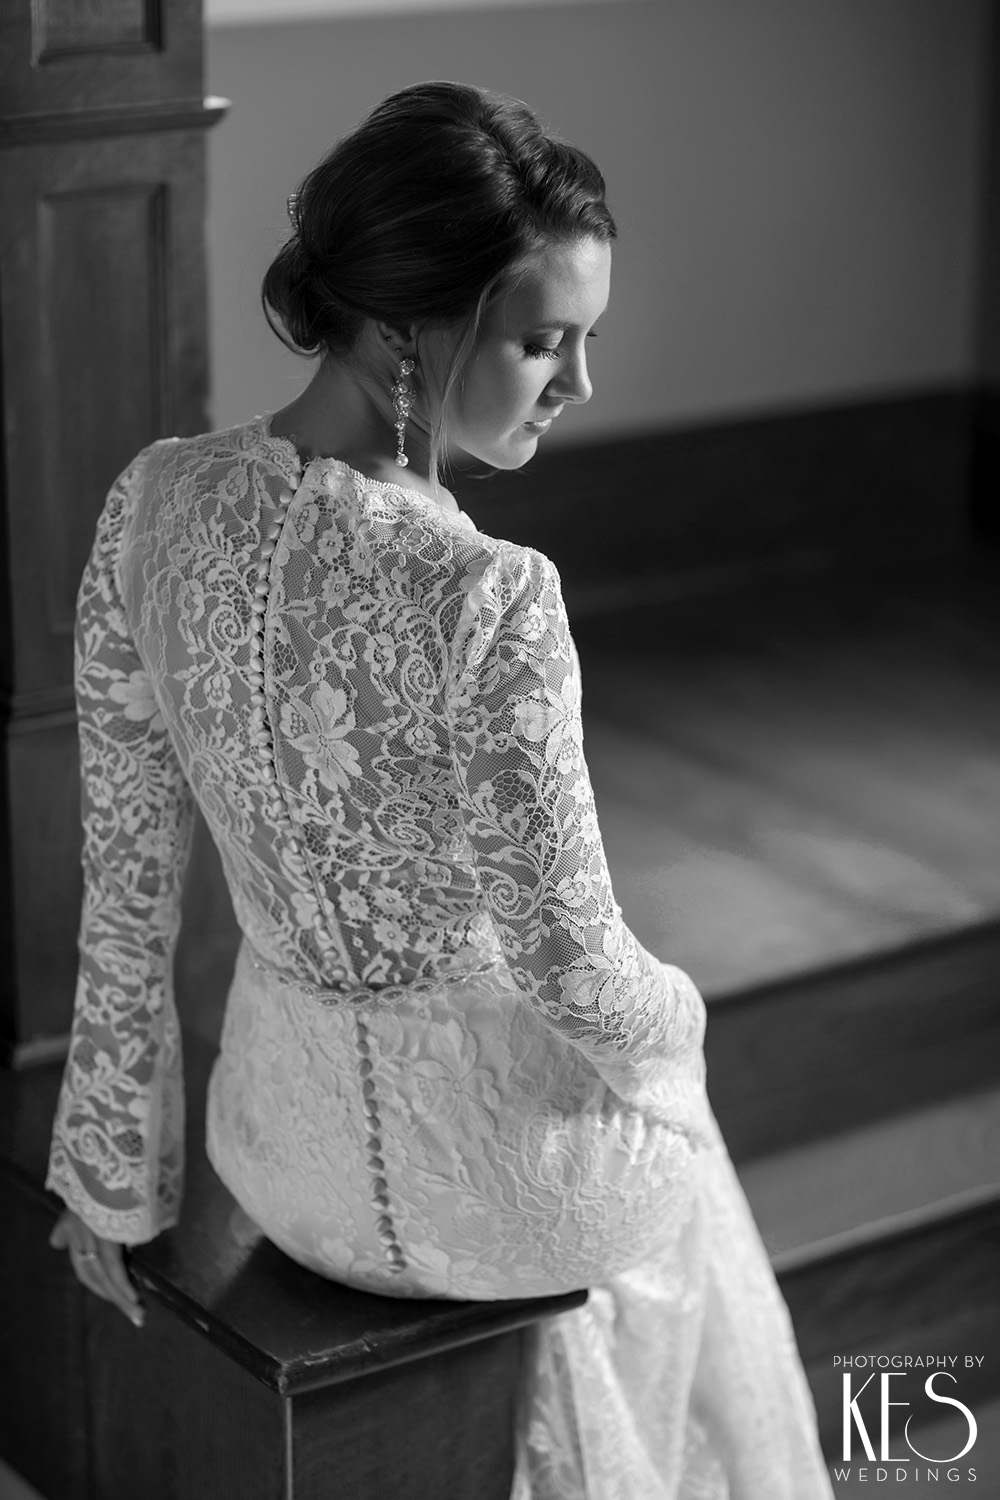 Andria_Bridals_Jonesboro_KES_Weddings_19.JPG